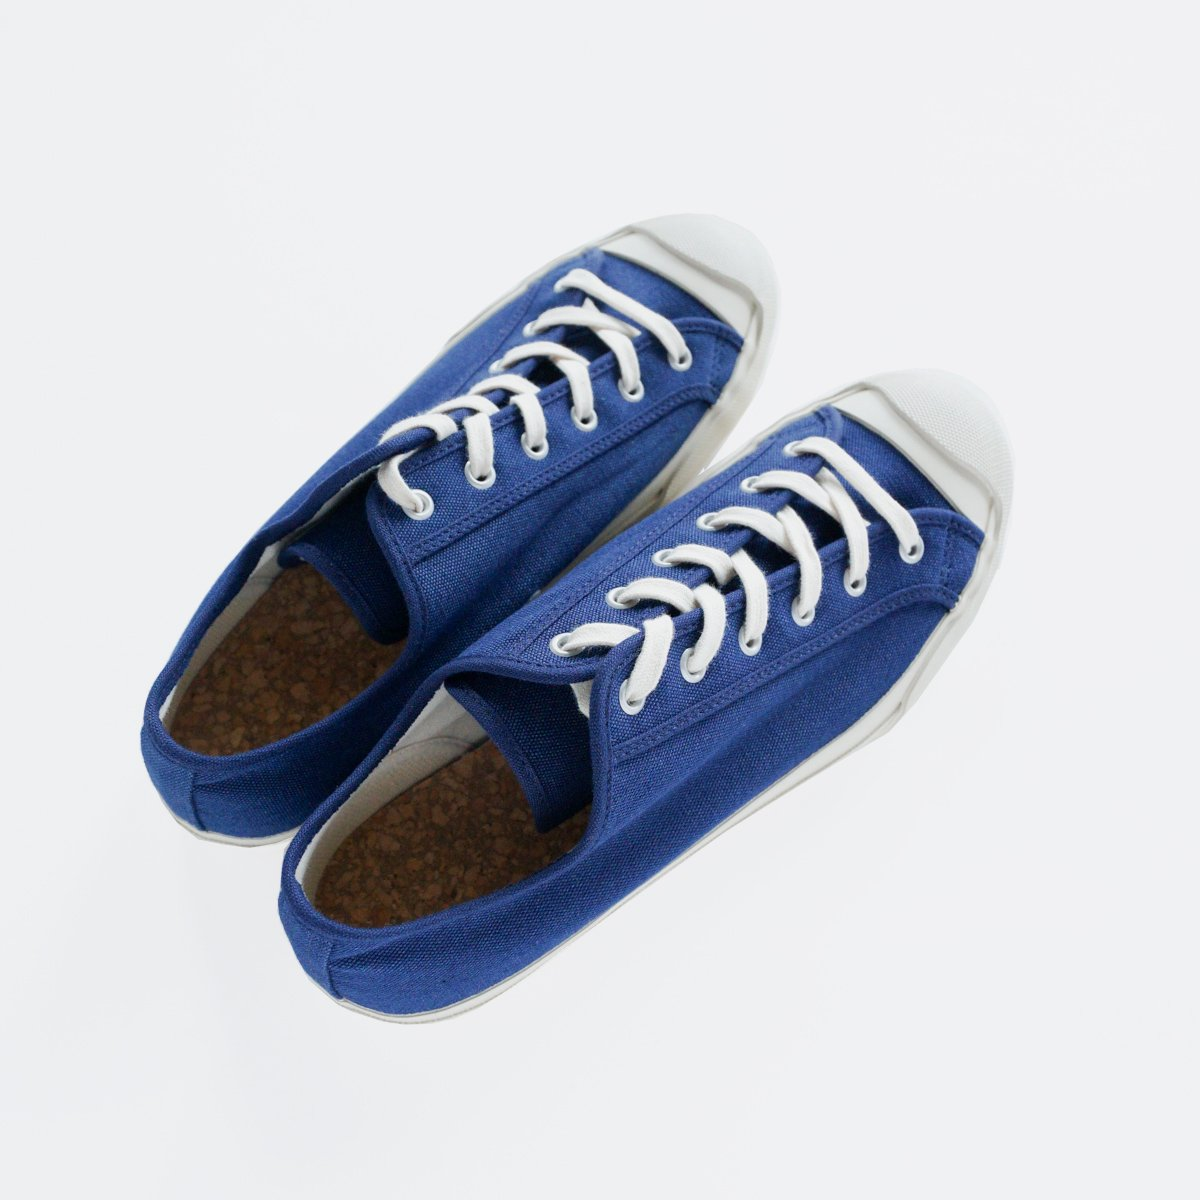 DOEK CANVAS SNEAKER 'COURT' (NAVY)4